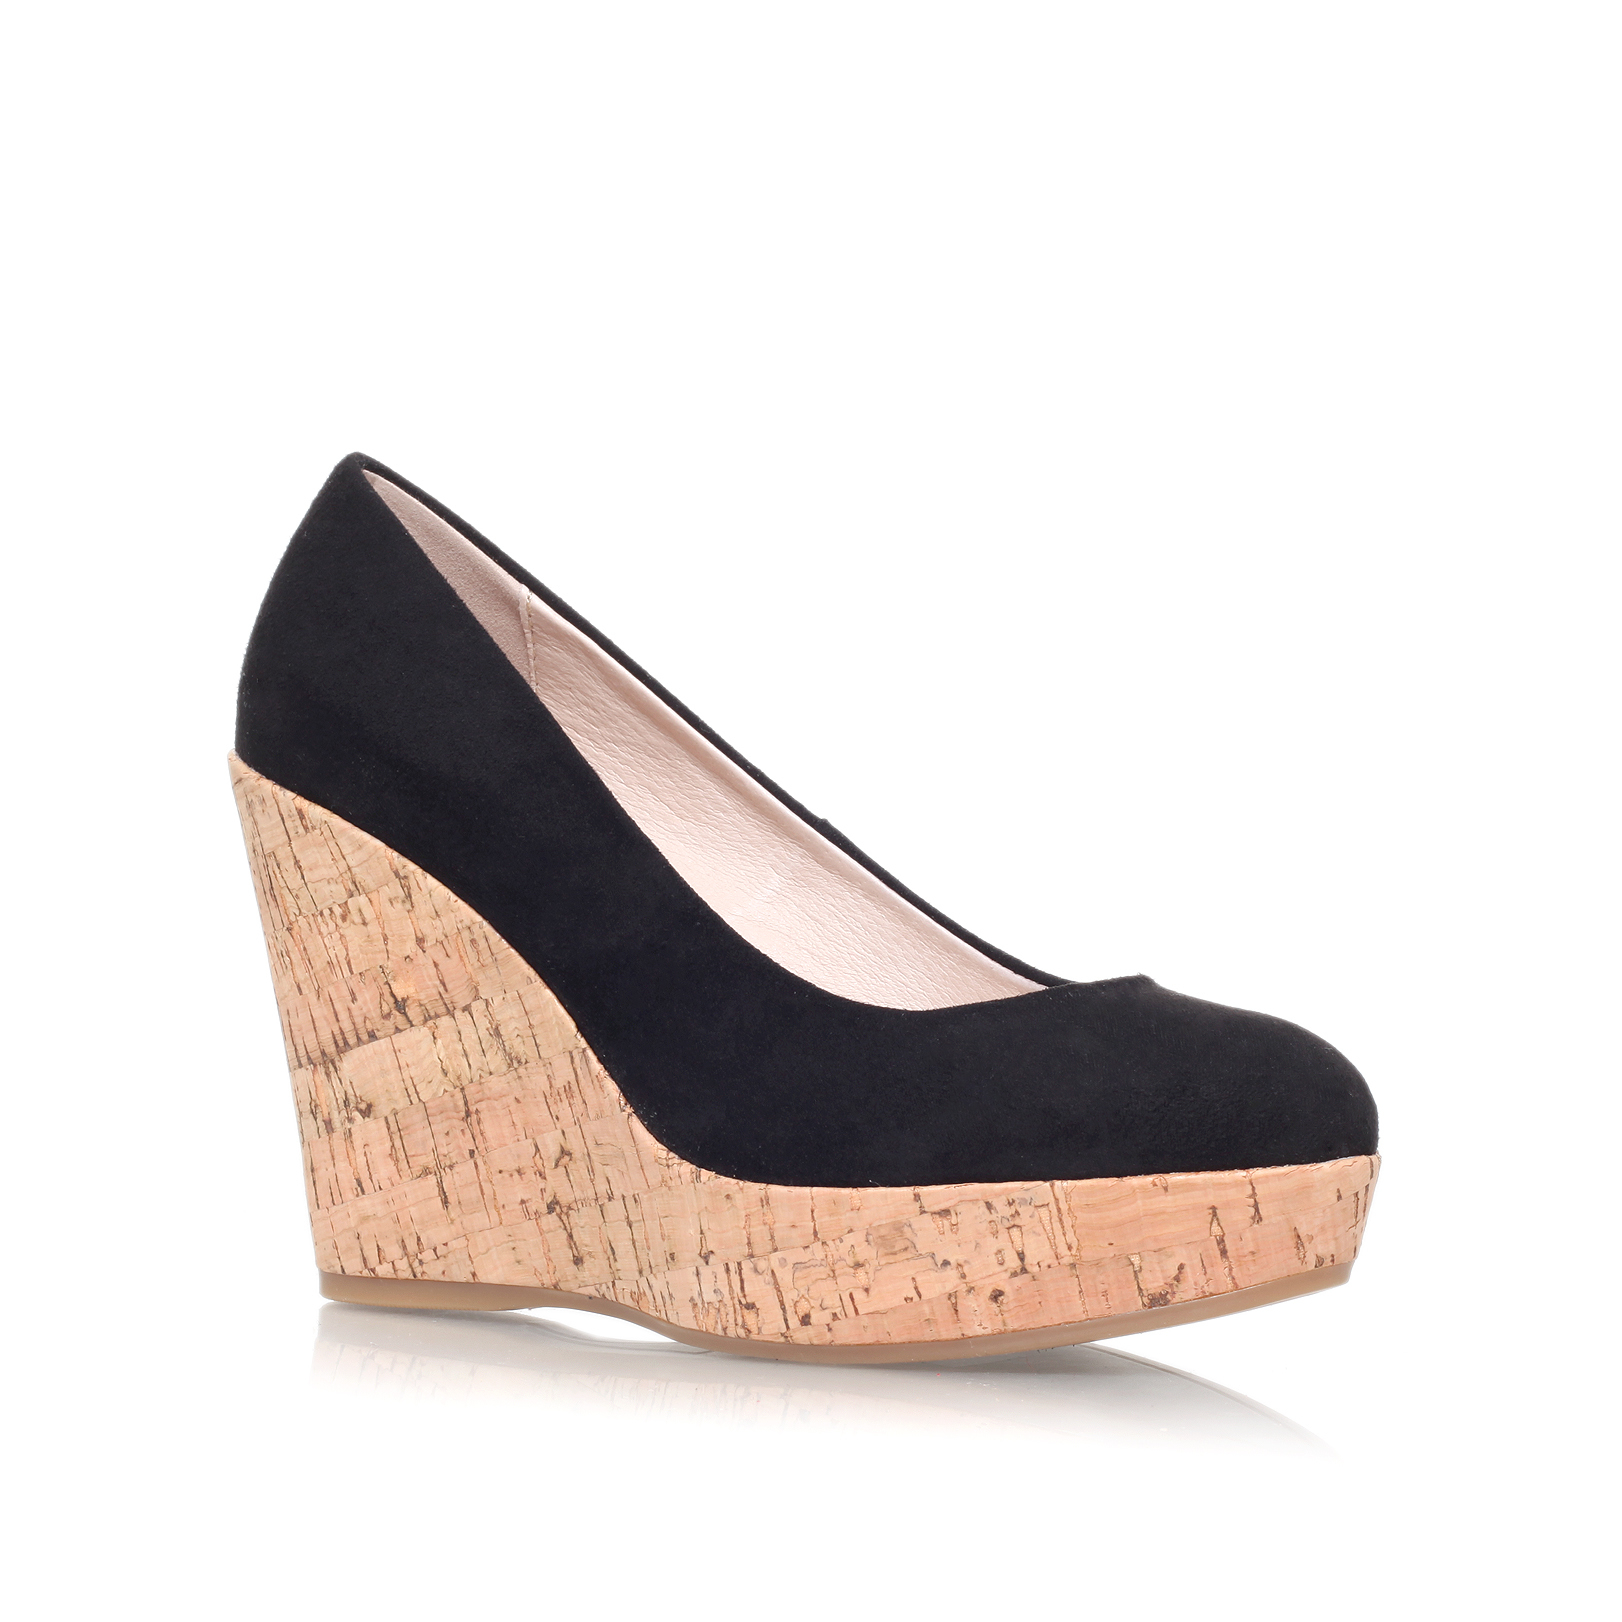 carvela kurt geiger attend wedge heeled court shoes in